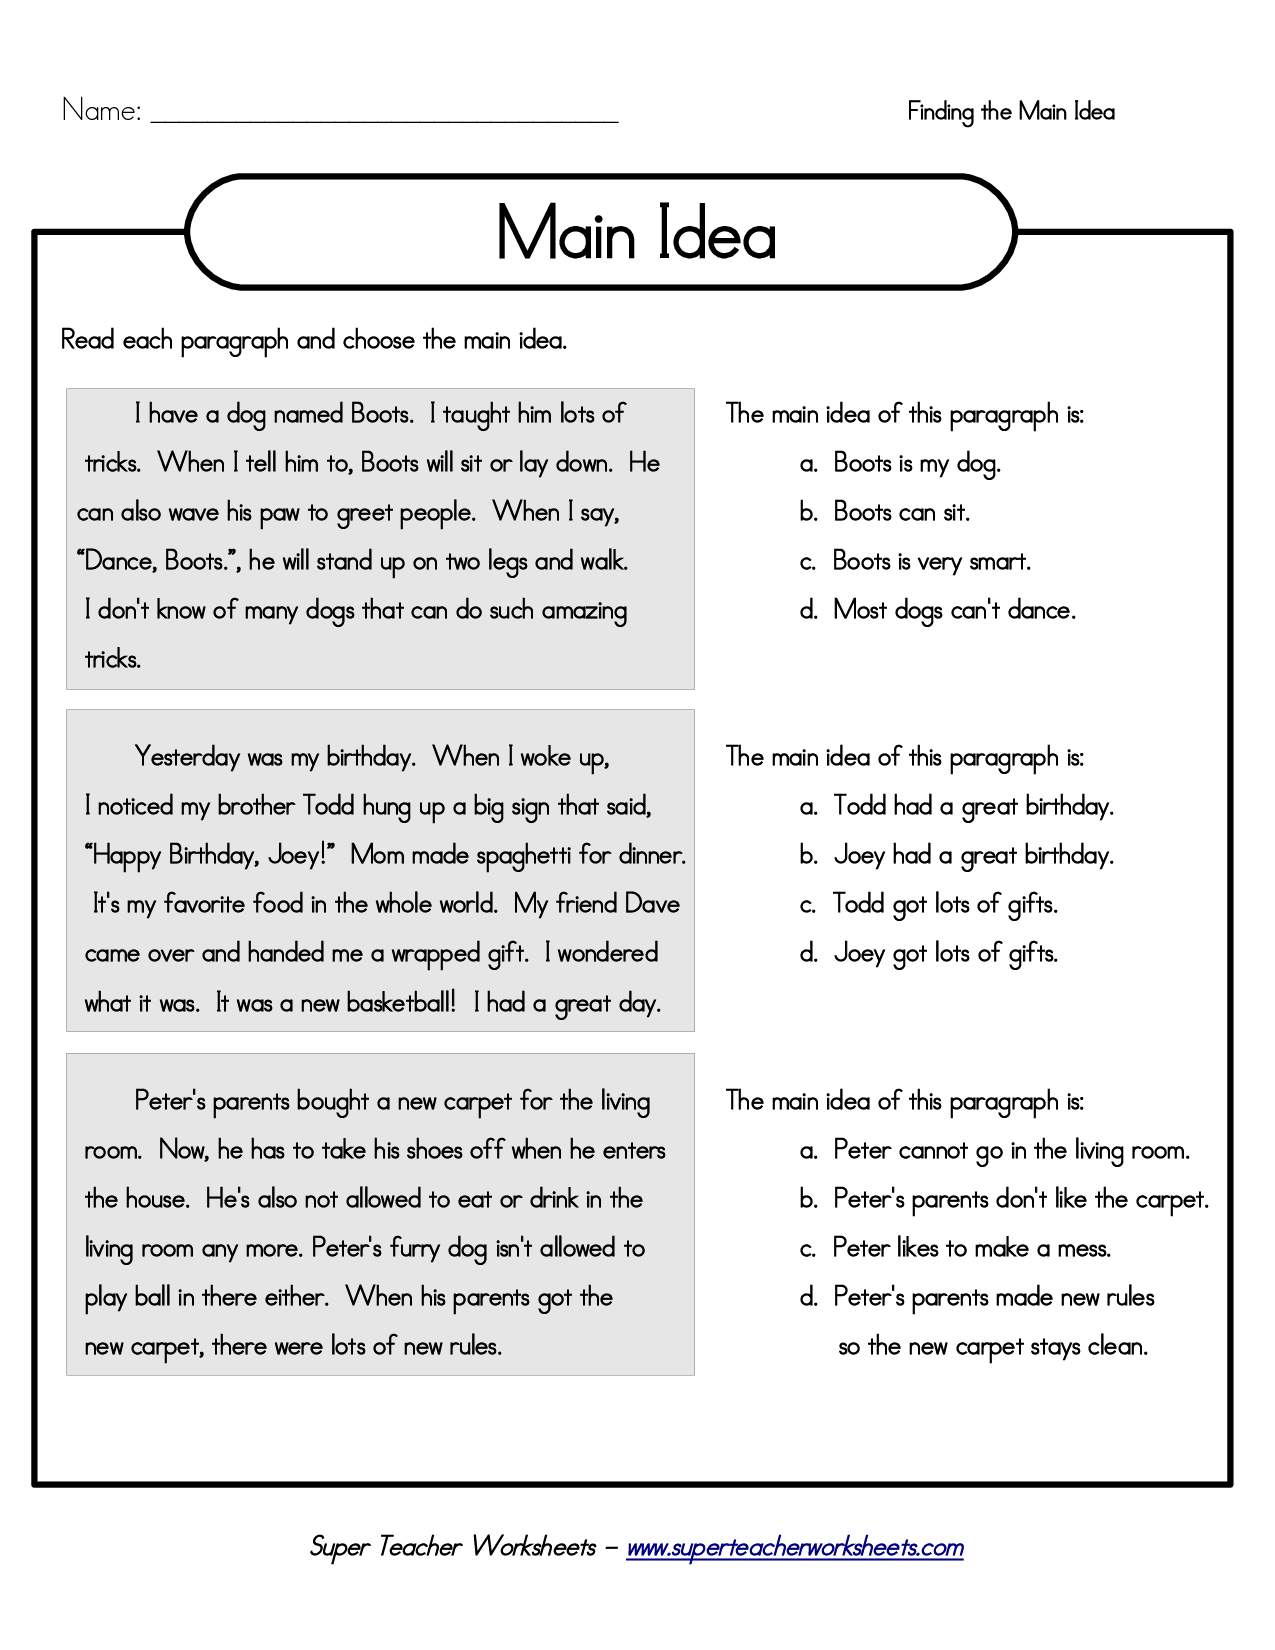 worksheet Main Idea Worksheets For 2nd Grade 17 images about reading main idea on pinterest graphic organizers student centered resources and pictures